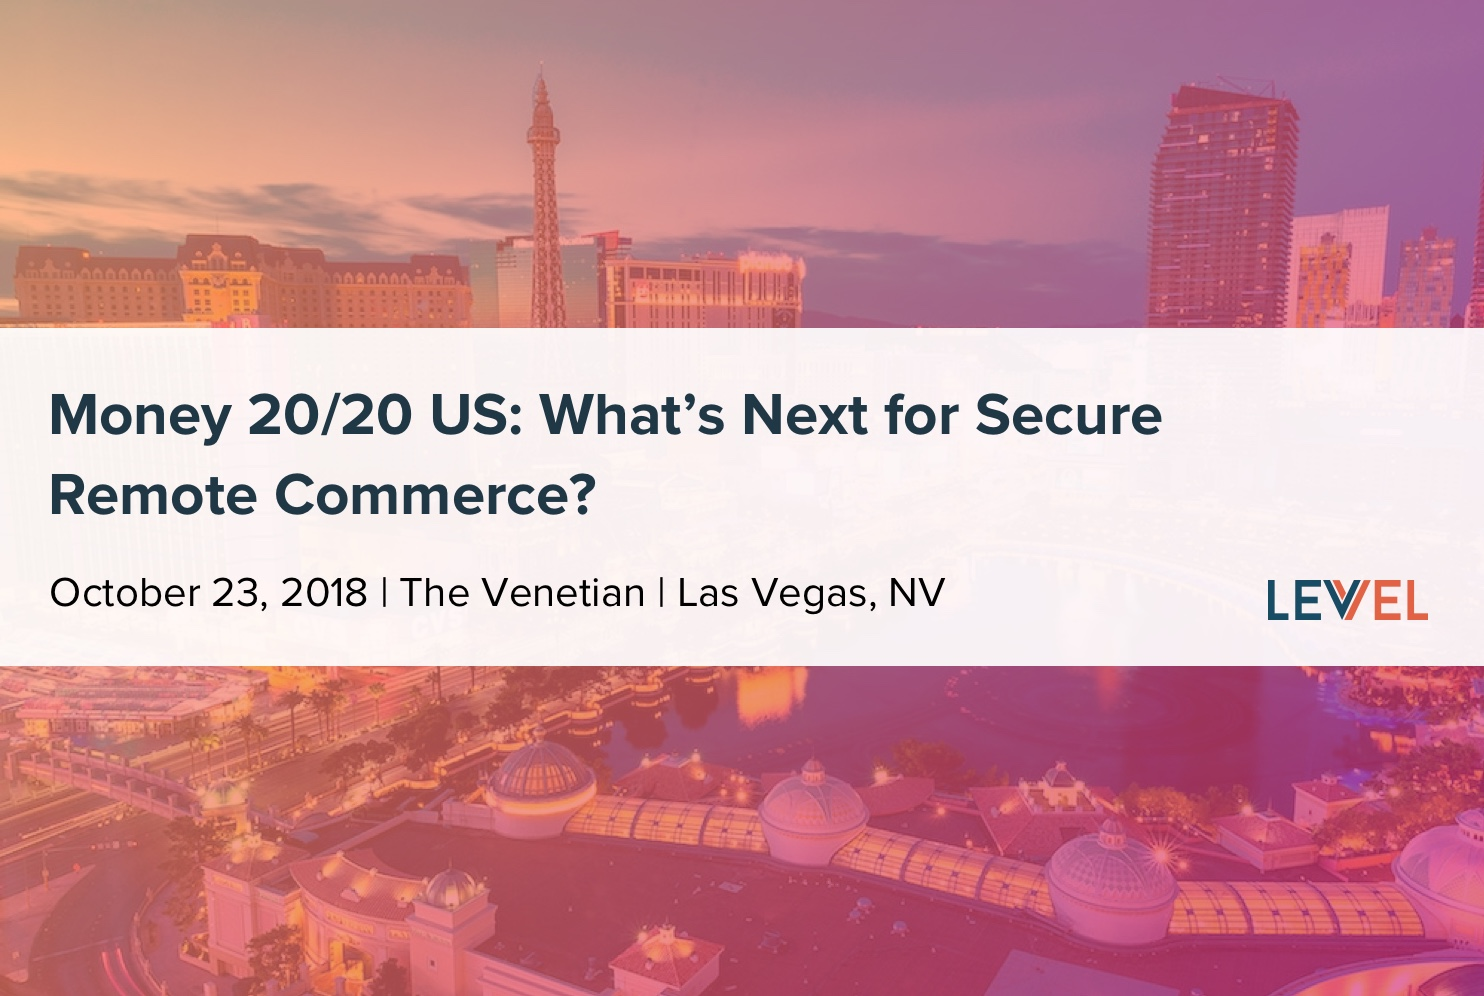 Money 20/20 US: What's Next for Secure Remote Commerce?